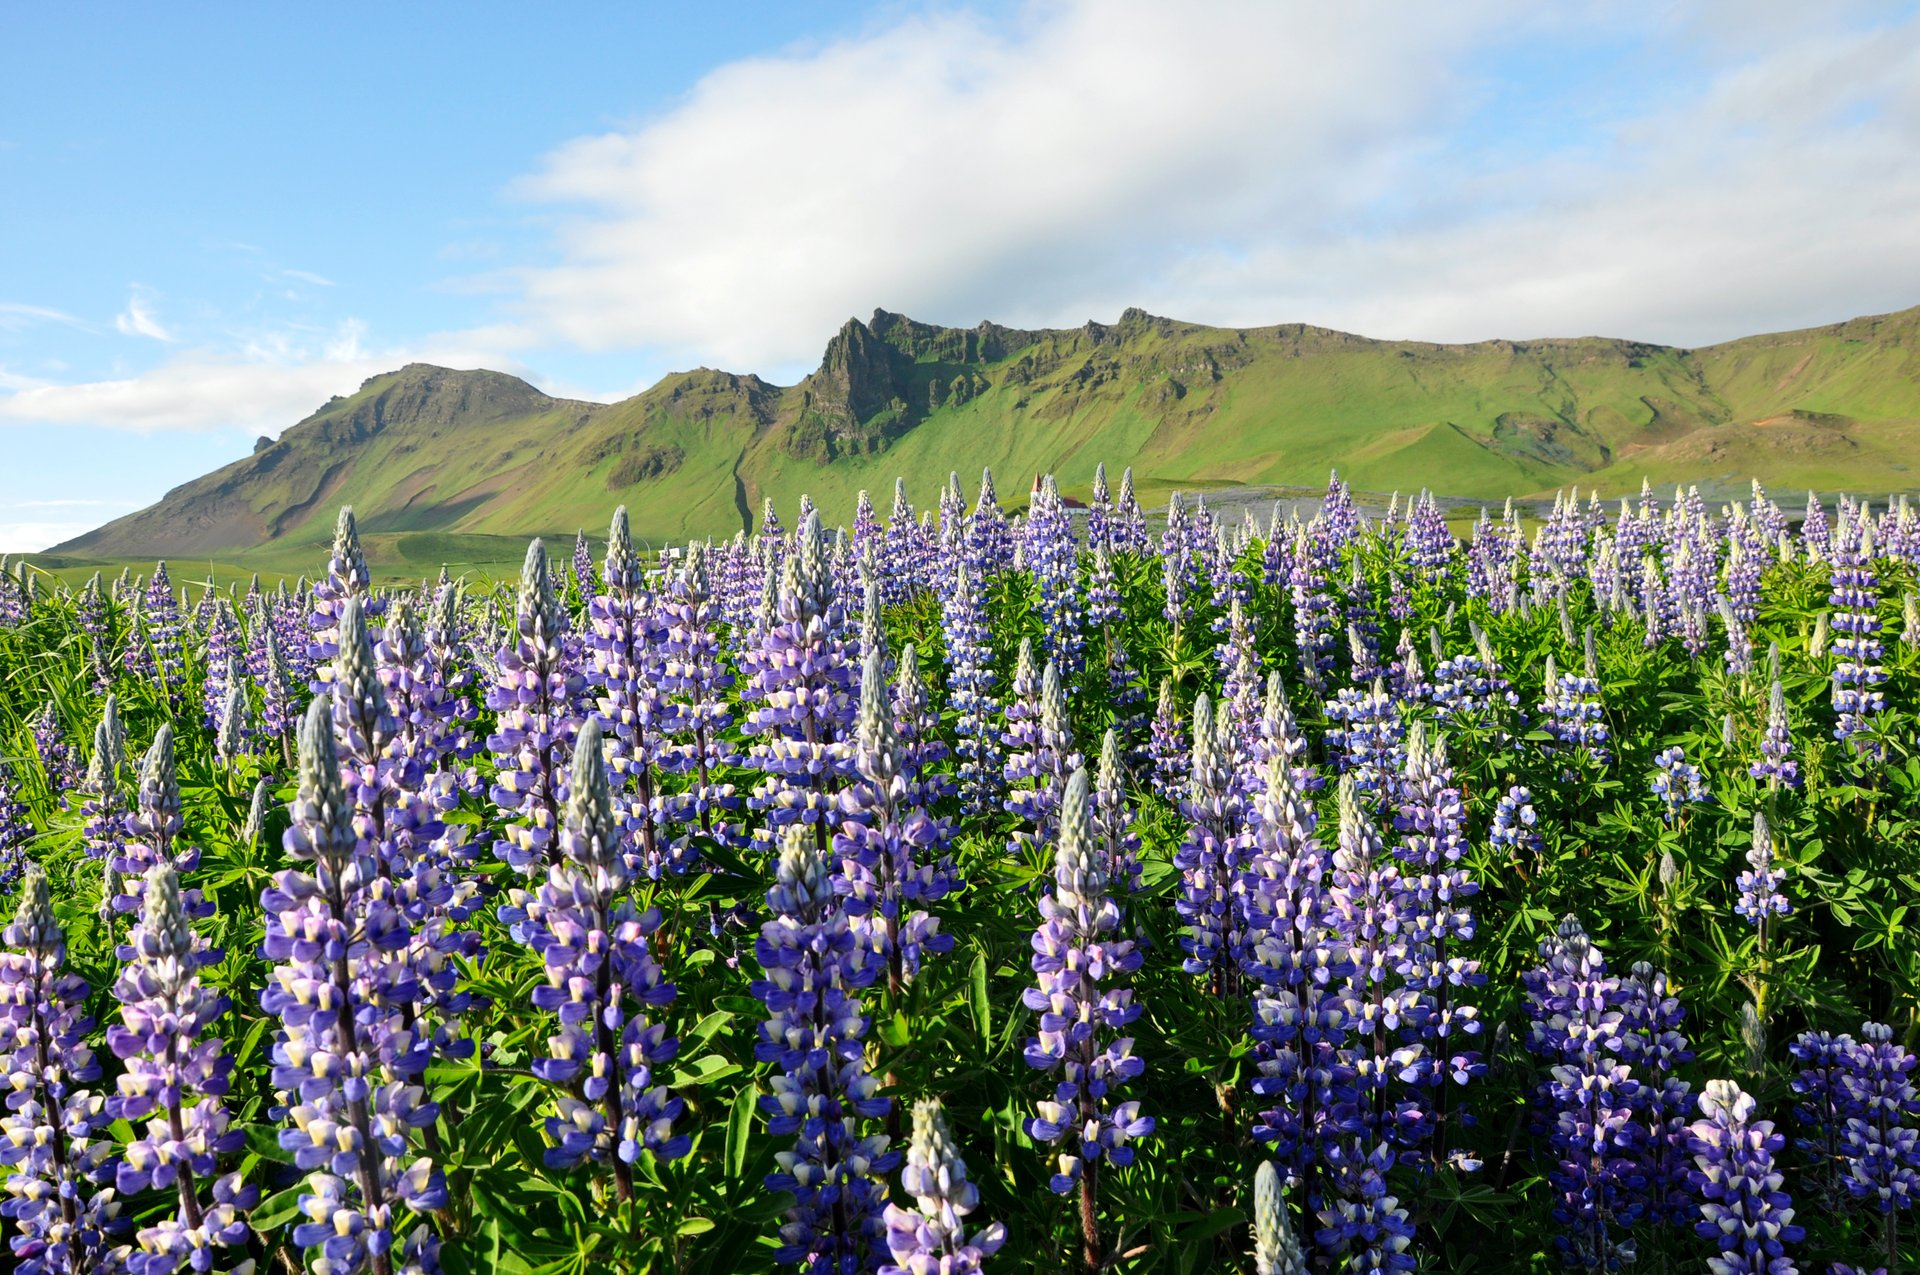 Lupin Blooming in Iceland 2019 - Best Time